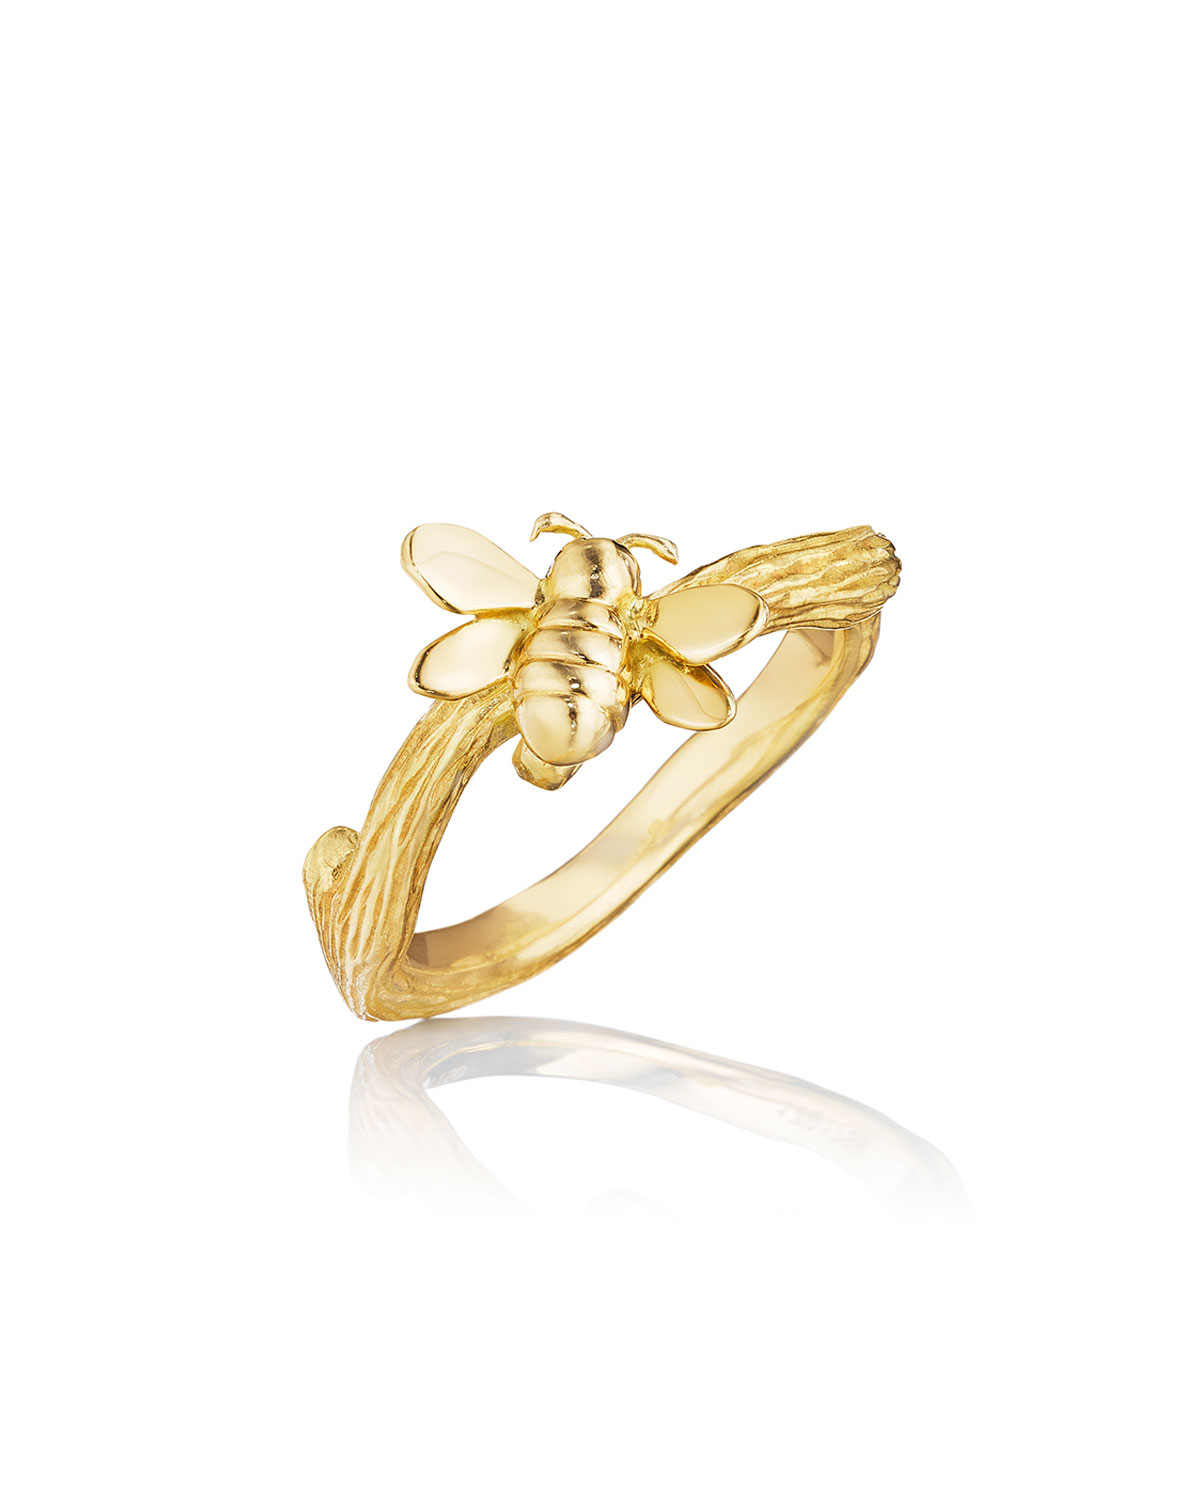 Wonderland 18K Gold Small Stackable Bee Ring, Size 6.5